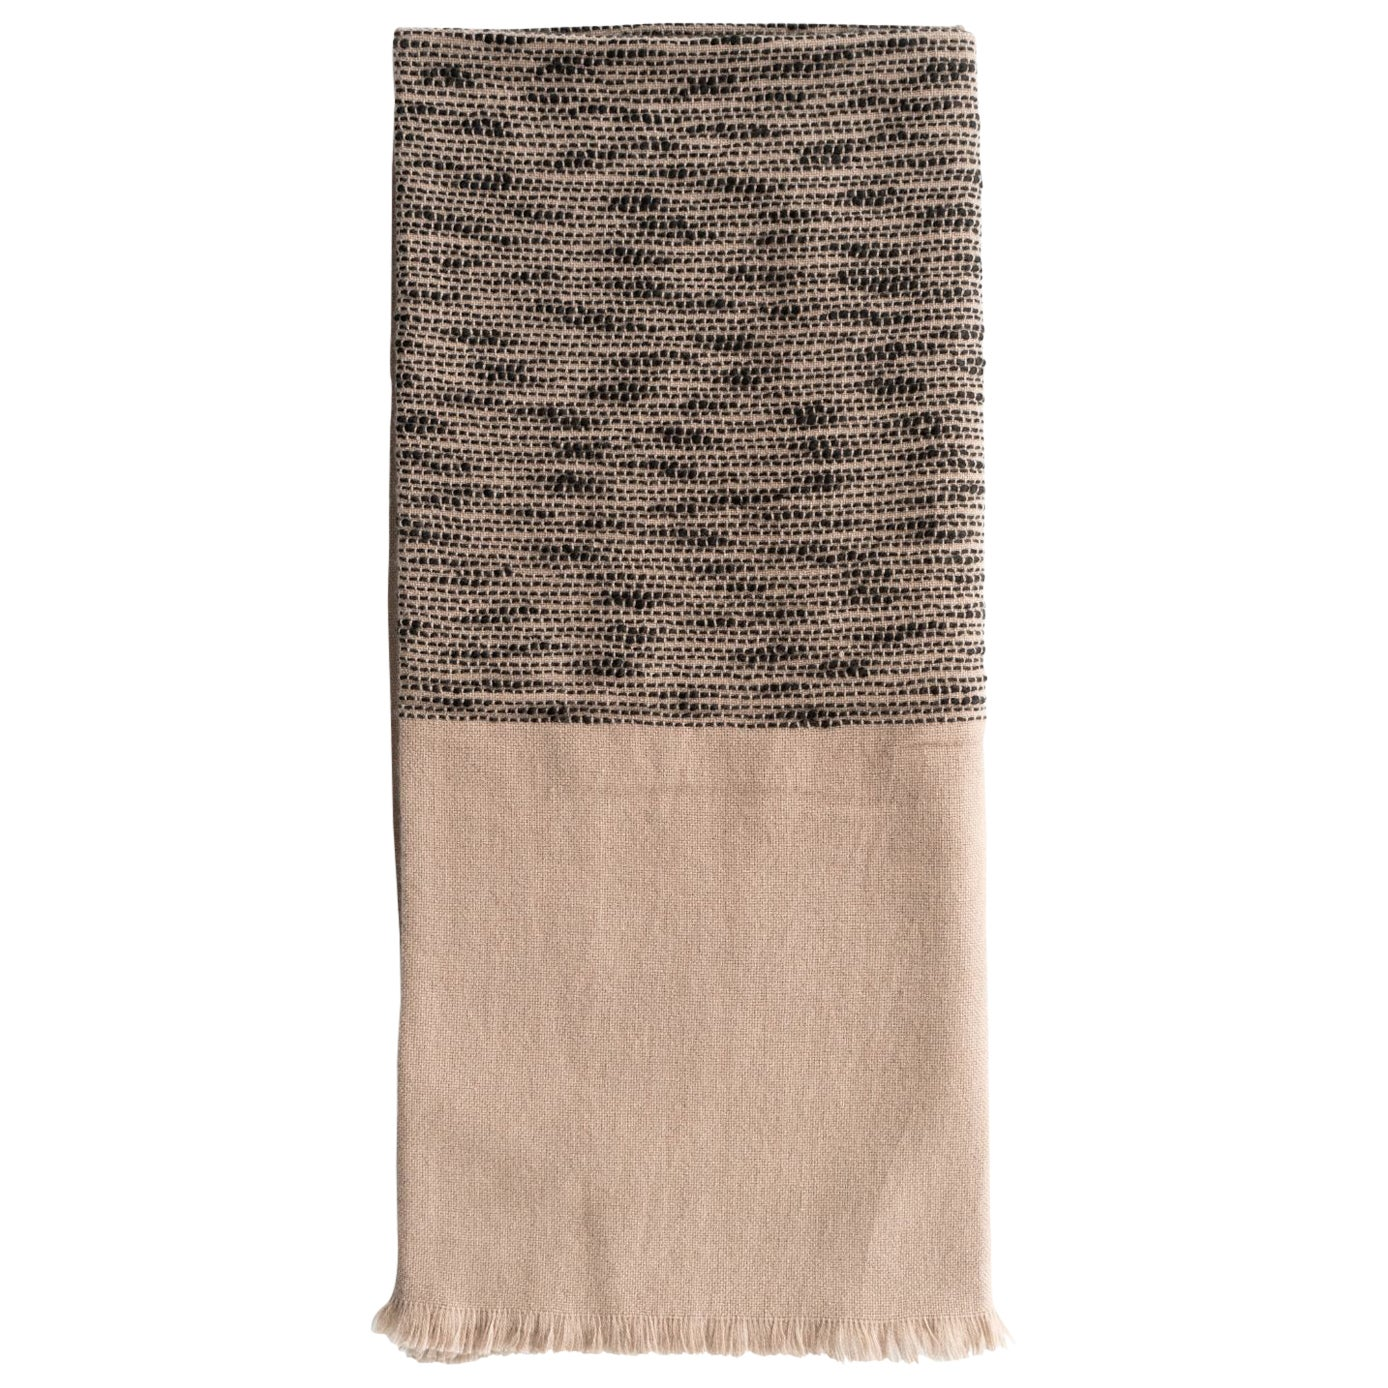 FLO Brown Handwoven & Hand Embroidered Throw / Blanket In Soft Merino